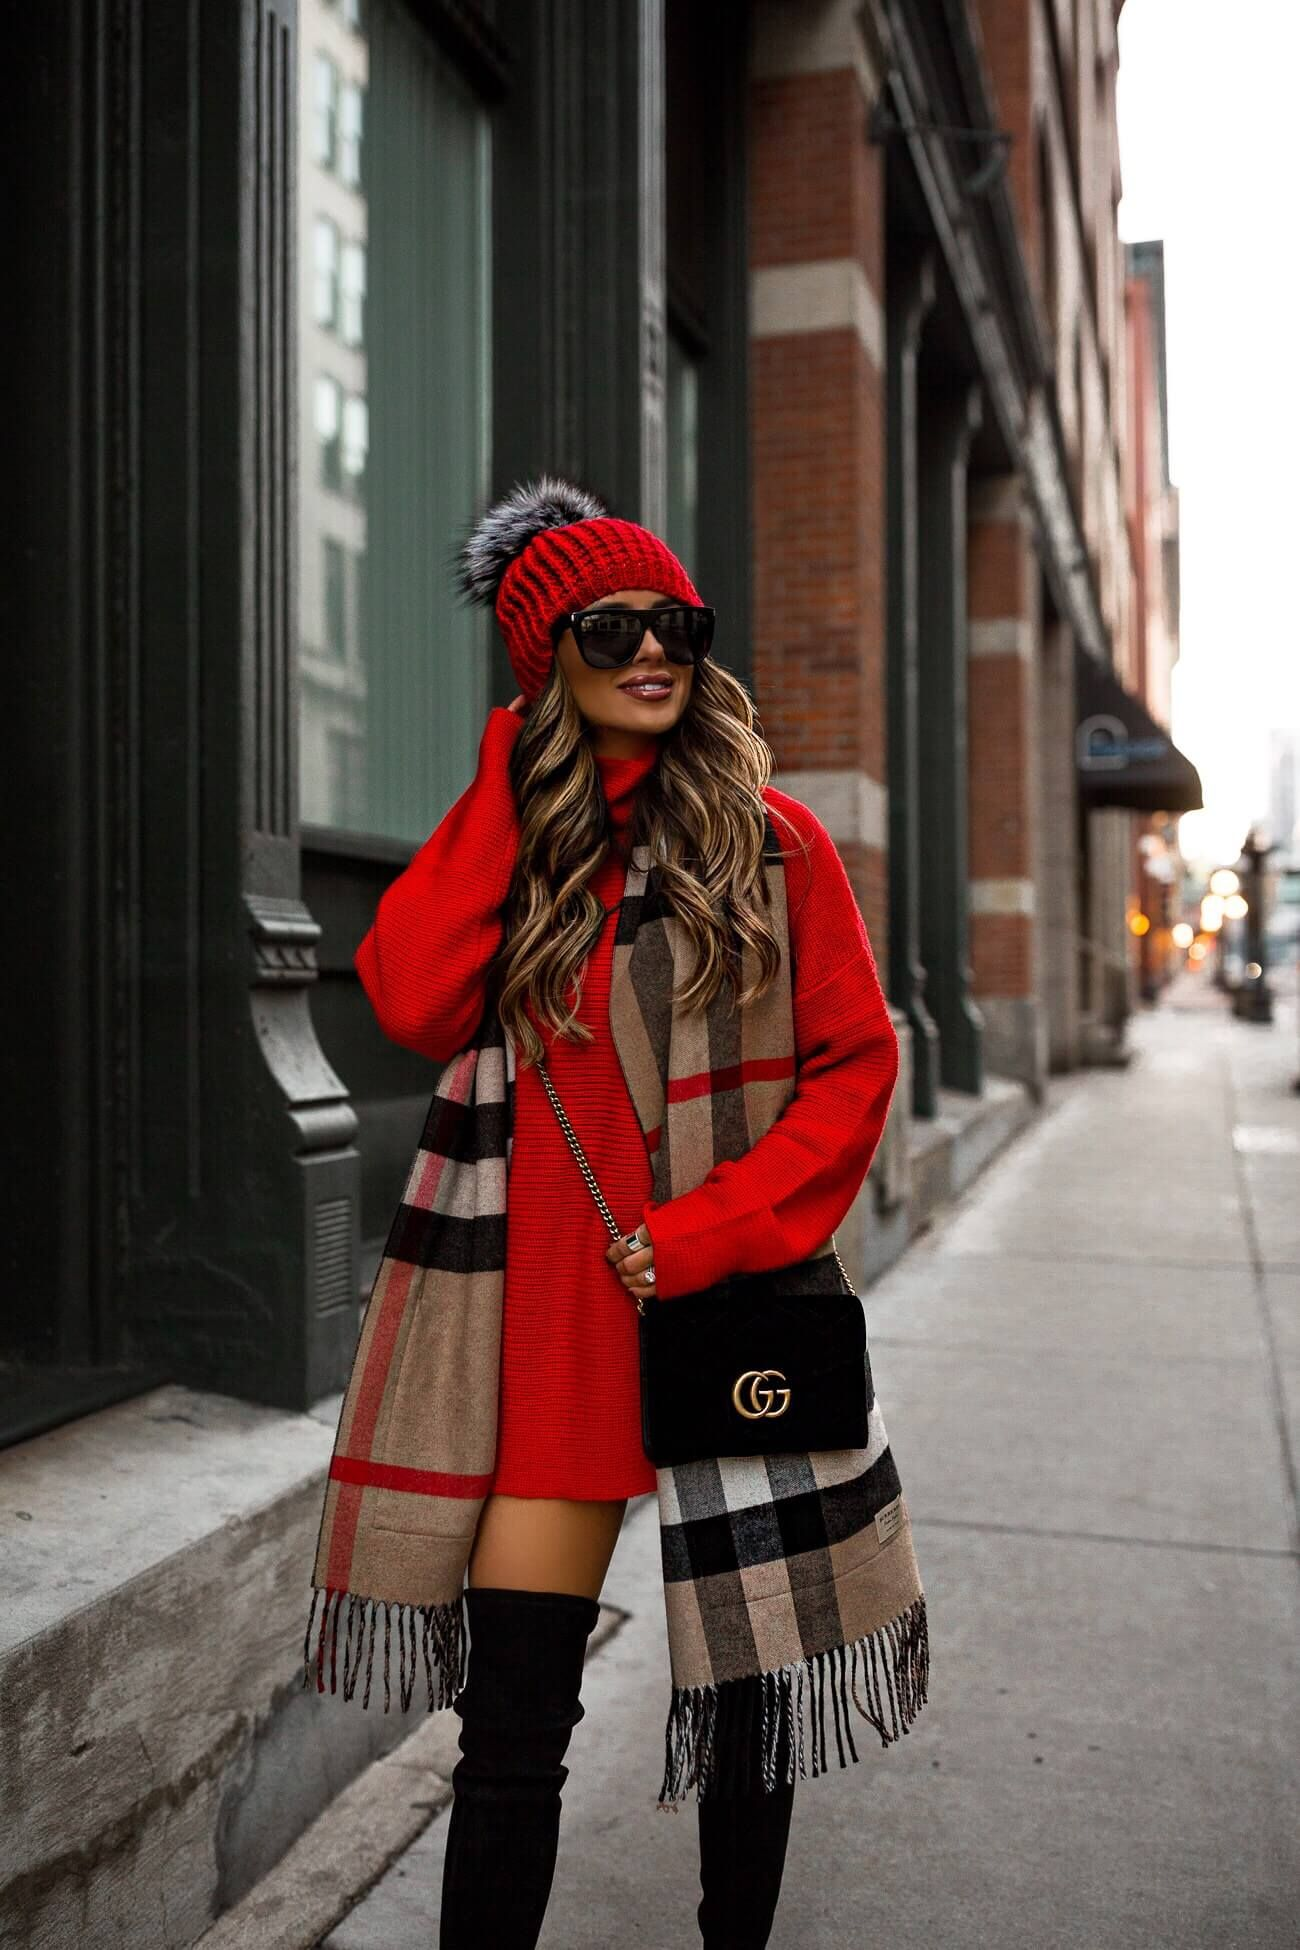 fashion blogger mia mia mine wearing a red sweater dress from revolve and a burberry scarf with a gucci velvet bag for winter 2018 #winterfashion